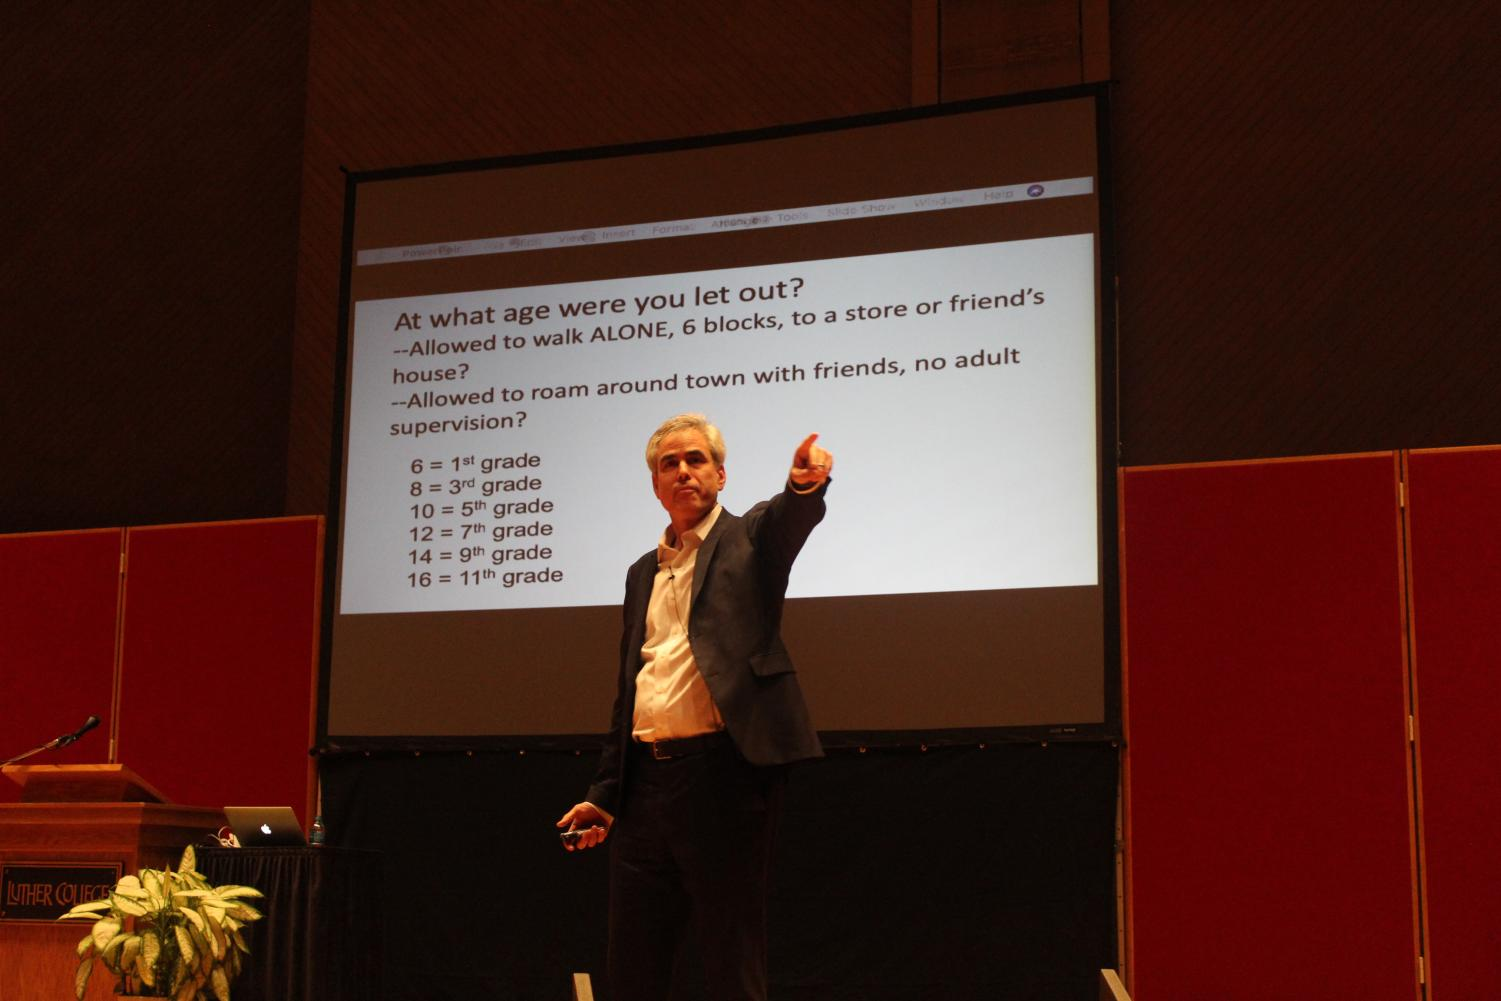 Jonathan Haidt lectured about possible consequences of